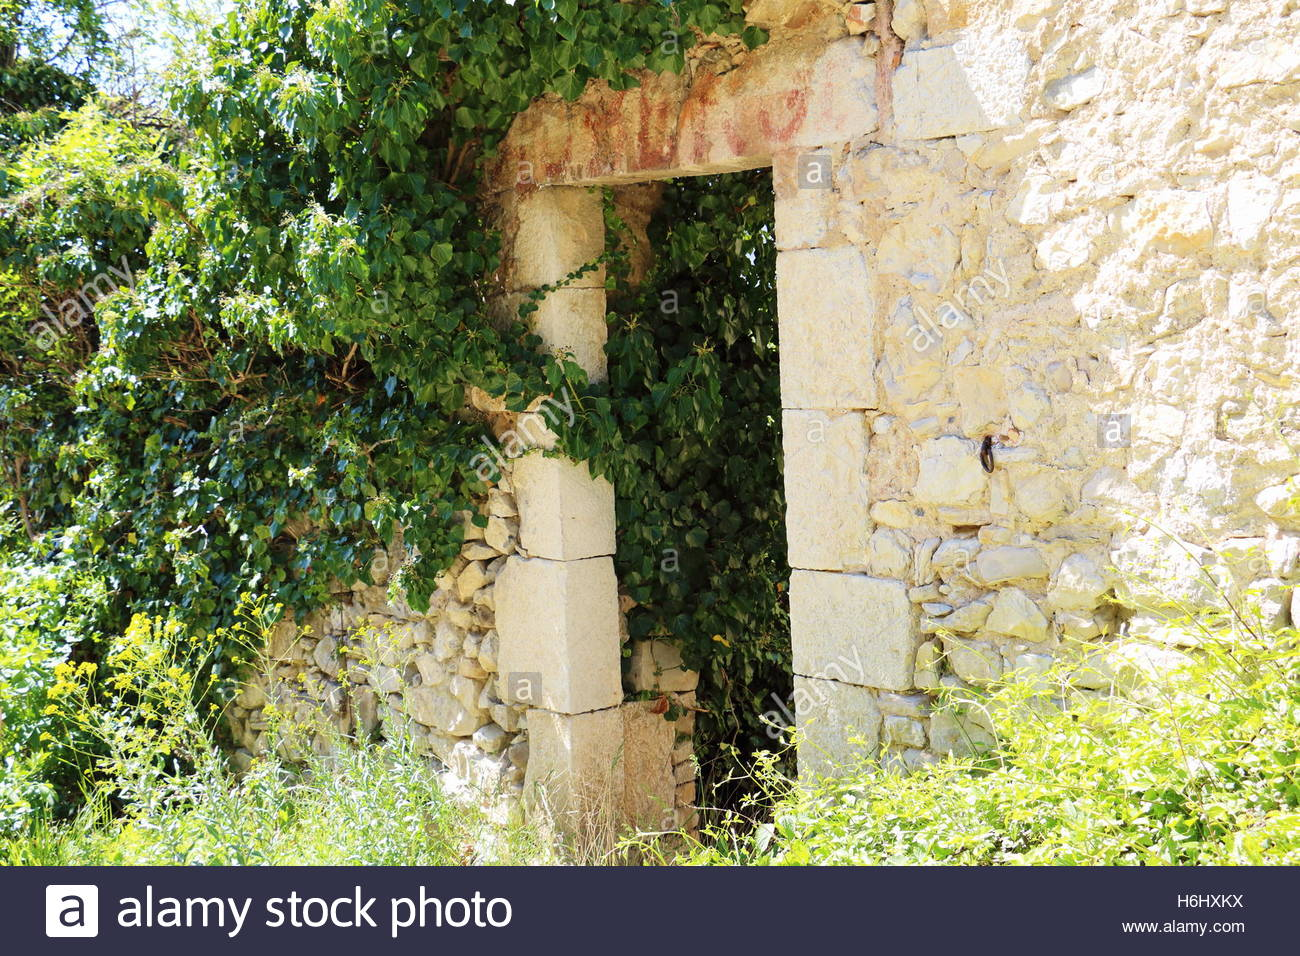 Old uninhabited Village, Decayed Building ,Abandoned place, ancient homes decaying, countryside in southern France Stock Photo